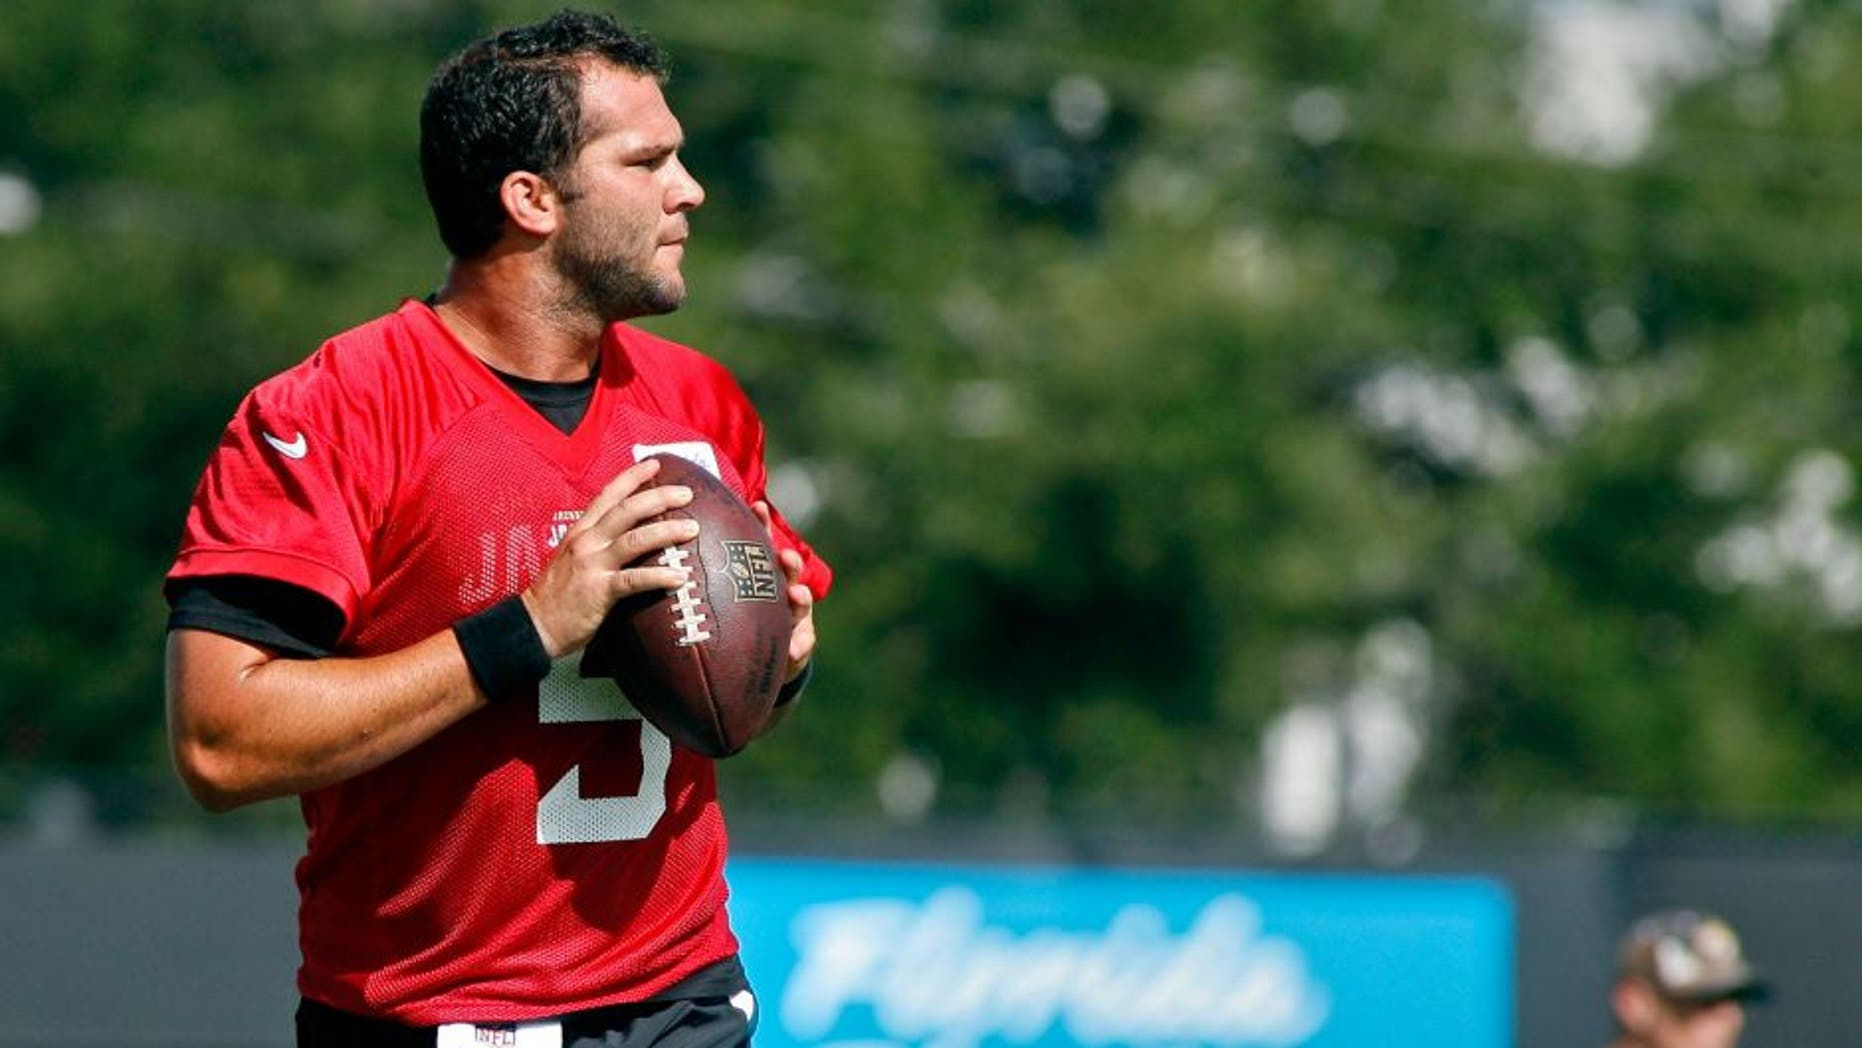 Jul 25, 2014; Jacksonville, FL, USA; Jacksonville Jaguars quarterback Blake Bortles (5) goes back to pass during the first day of training camp at Florida Blue Health and Wellness Practice Fields. Mandatory Credit: Phil Sears-USA TODAY Sports